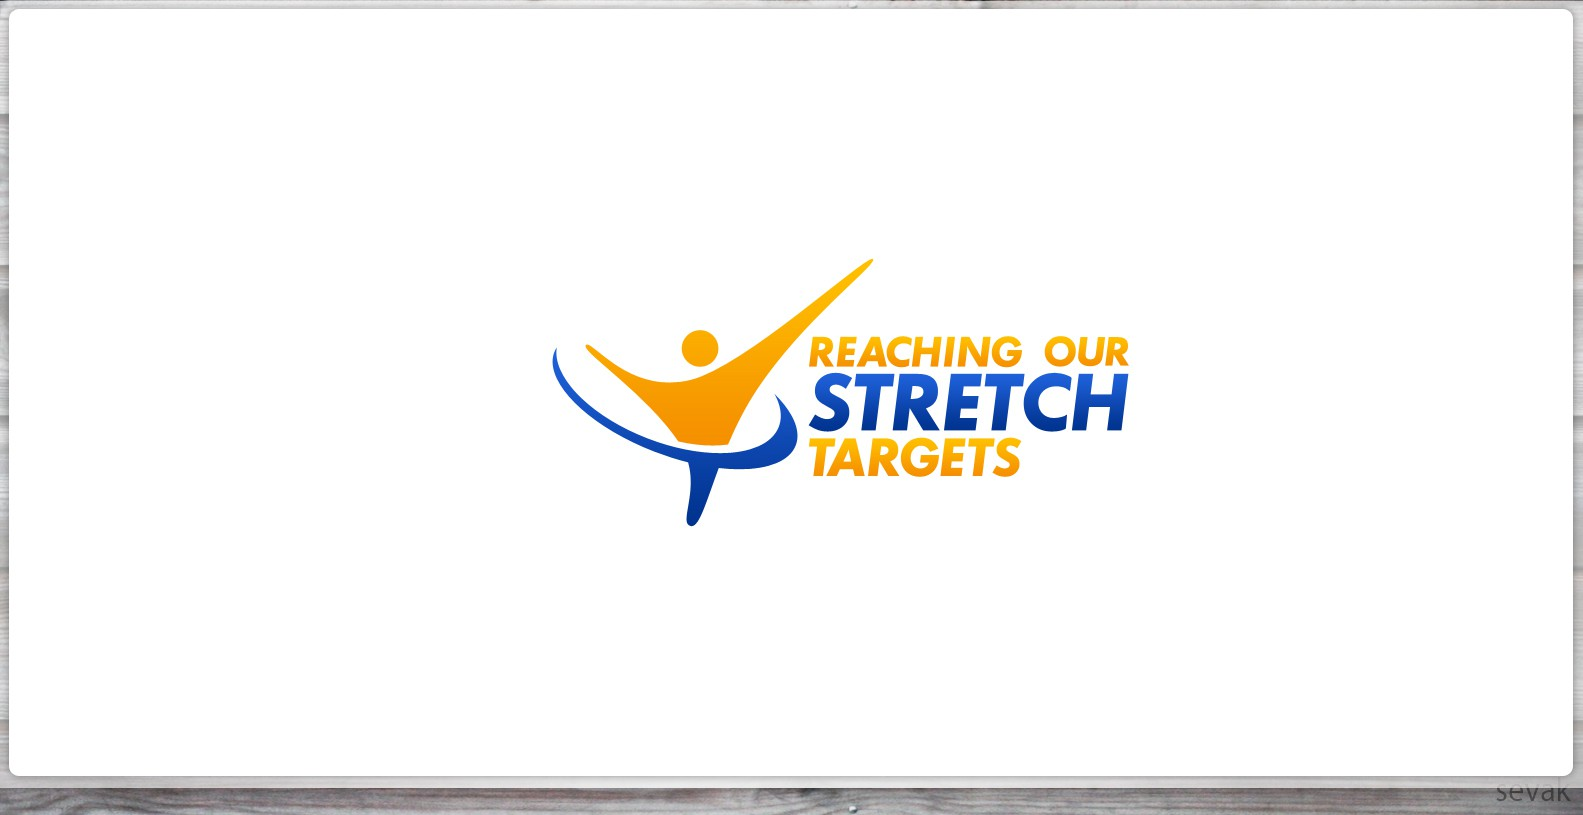 logo for corporate business health initiative promoting stretching